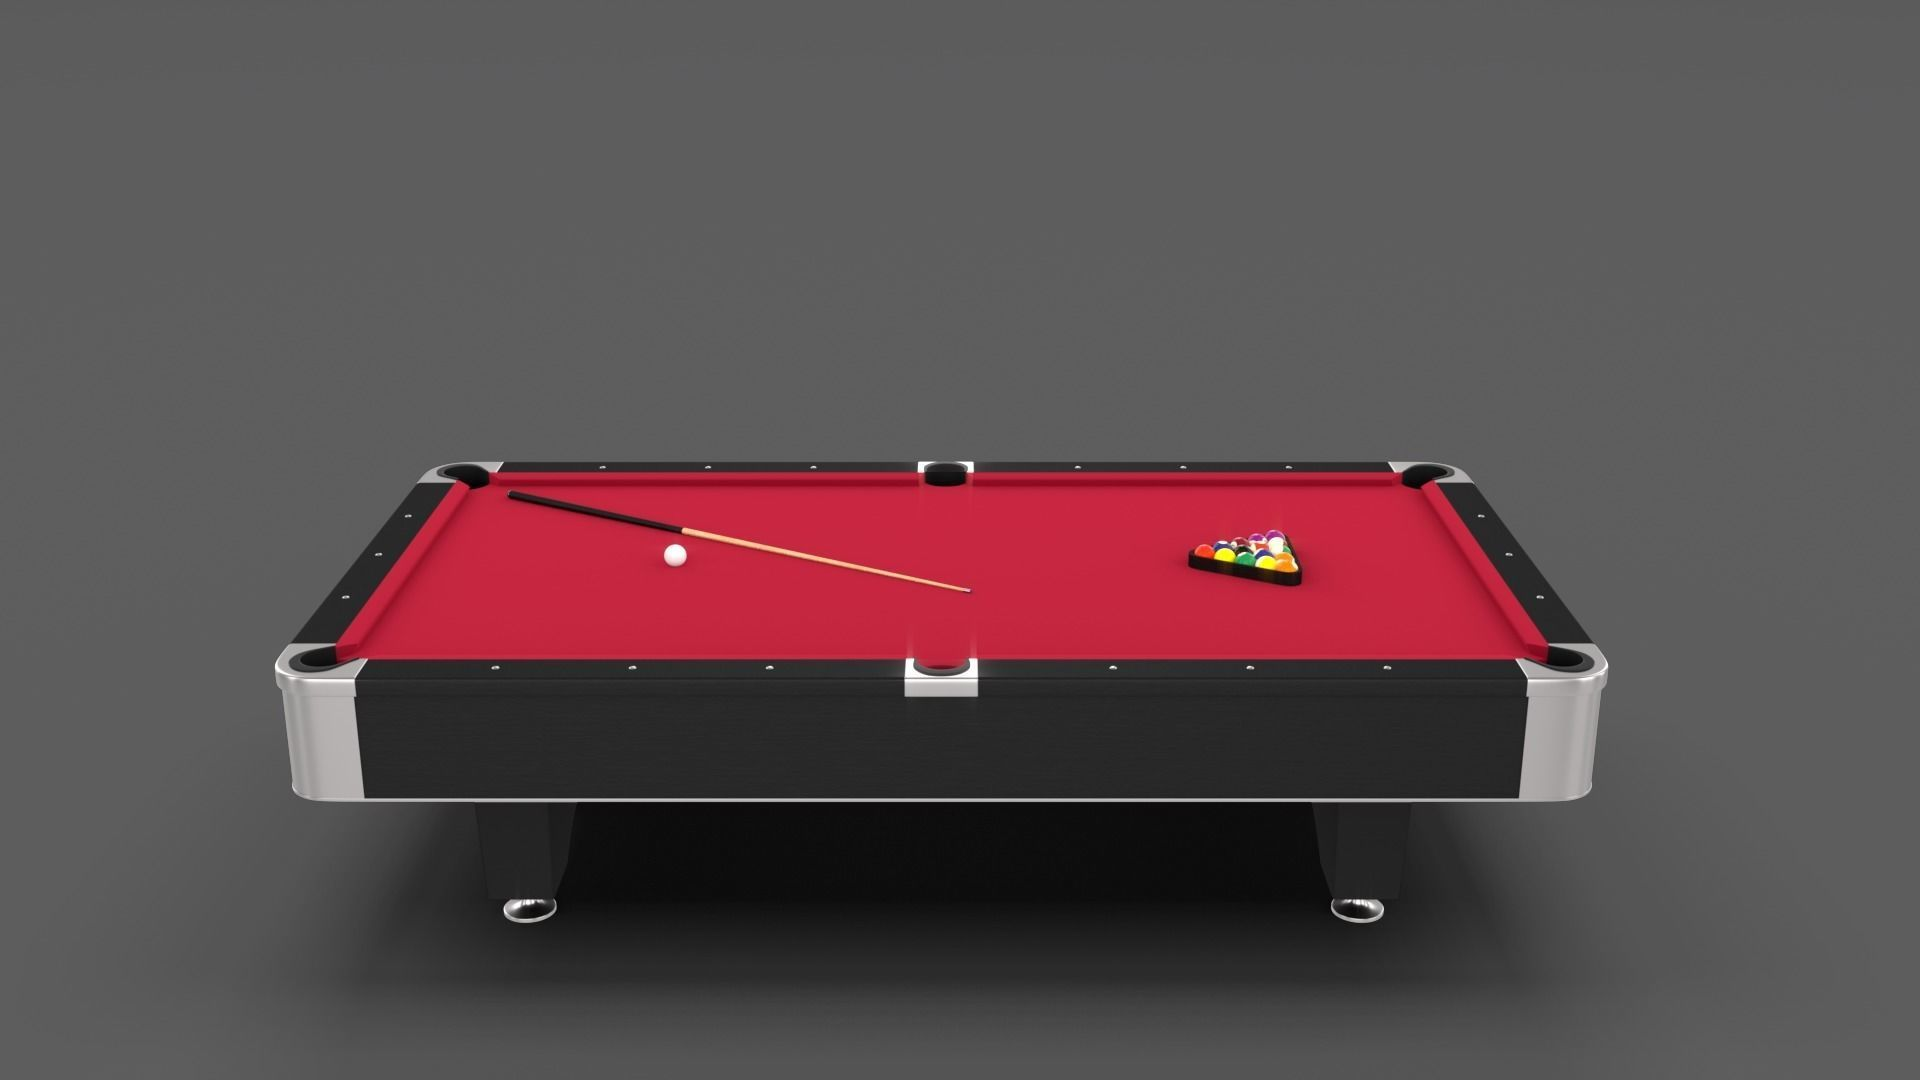 Beau 8 Ball Pool Table Red 3D Model